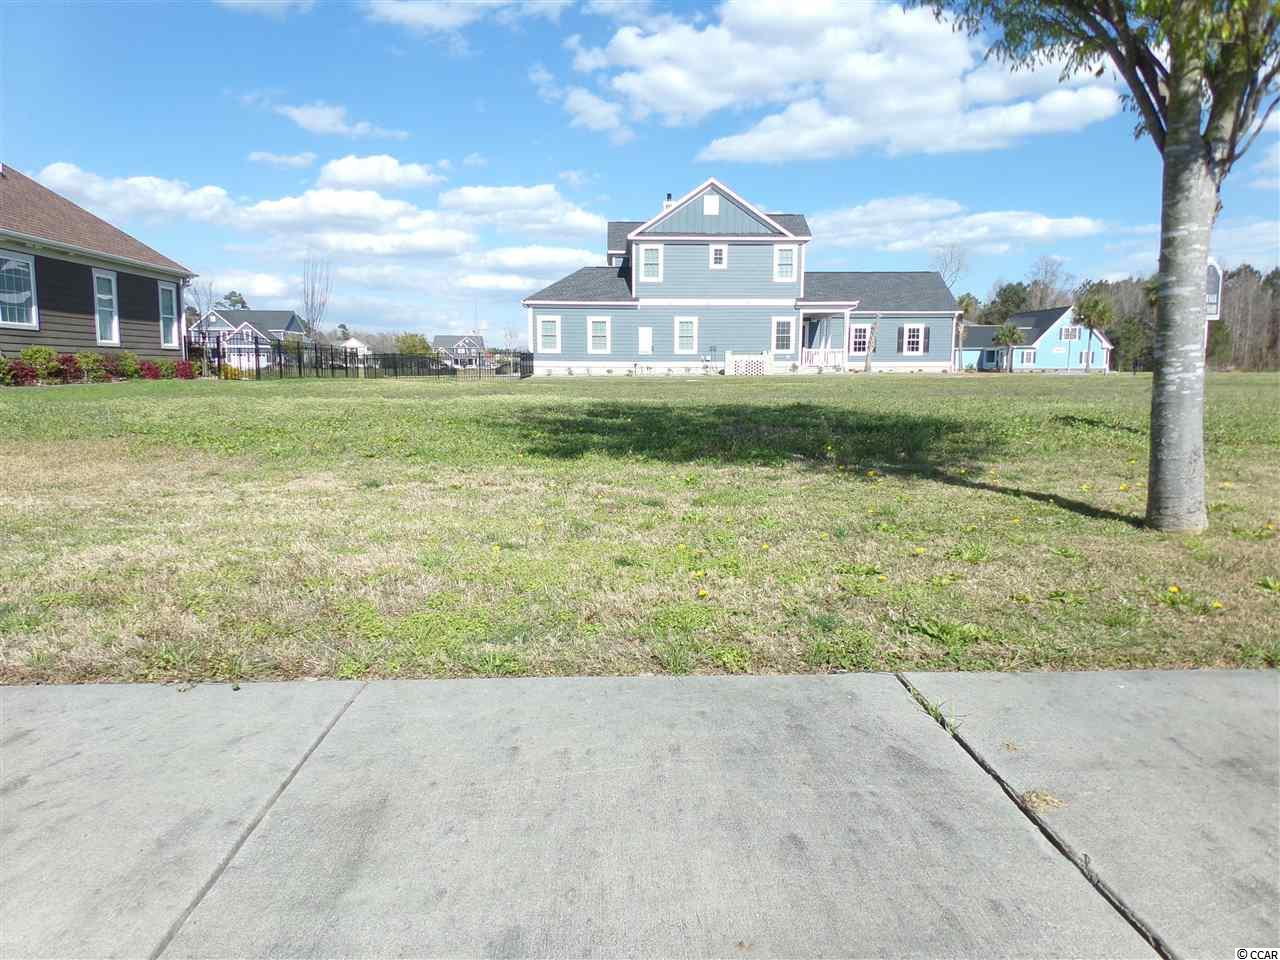 Land for Sale at 2008 CROW FIELD CT LOT 439 PH 3 2008 CROW FIELD CT LOT 439 PH 3 Myrtle Beach, South Carolina 29579 United States